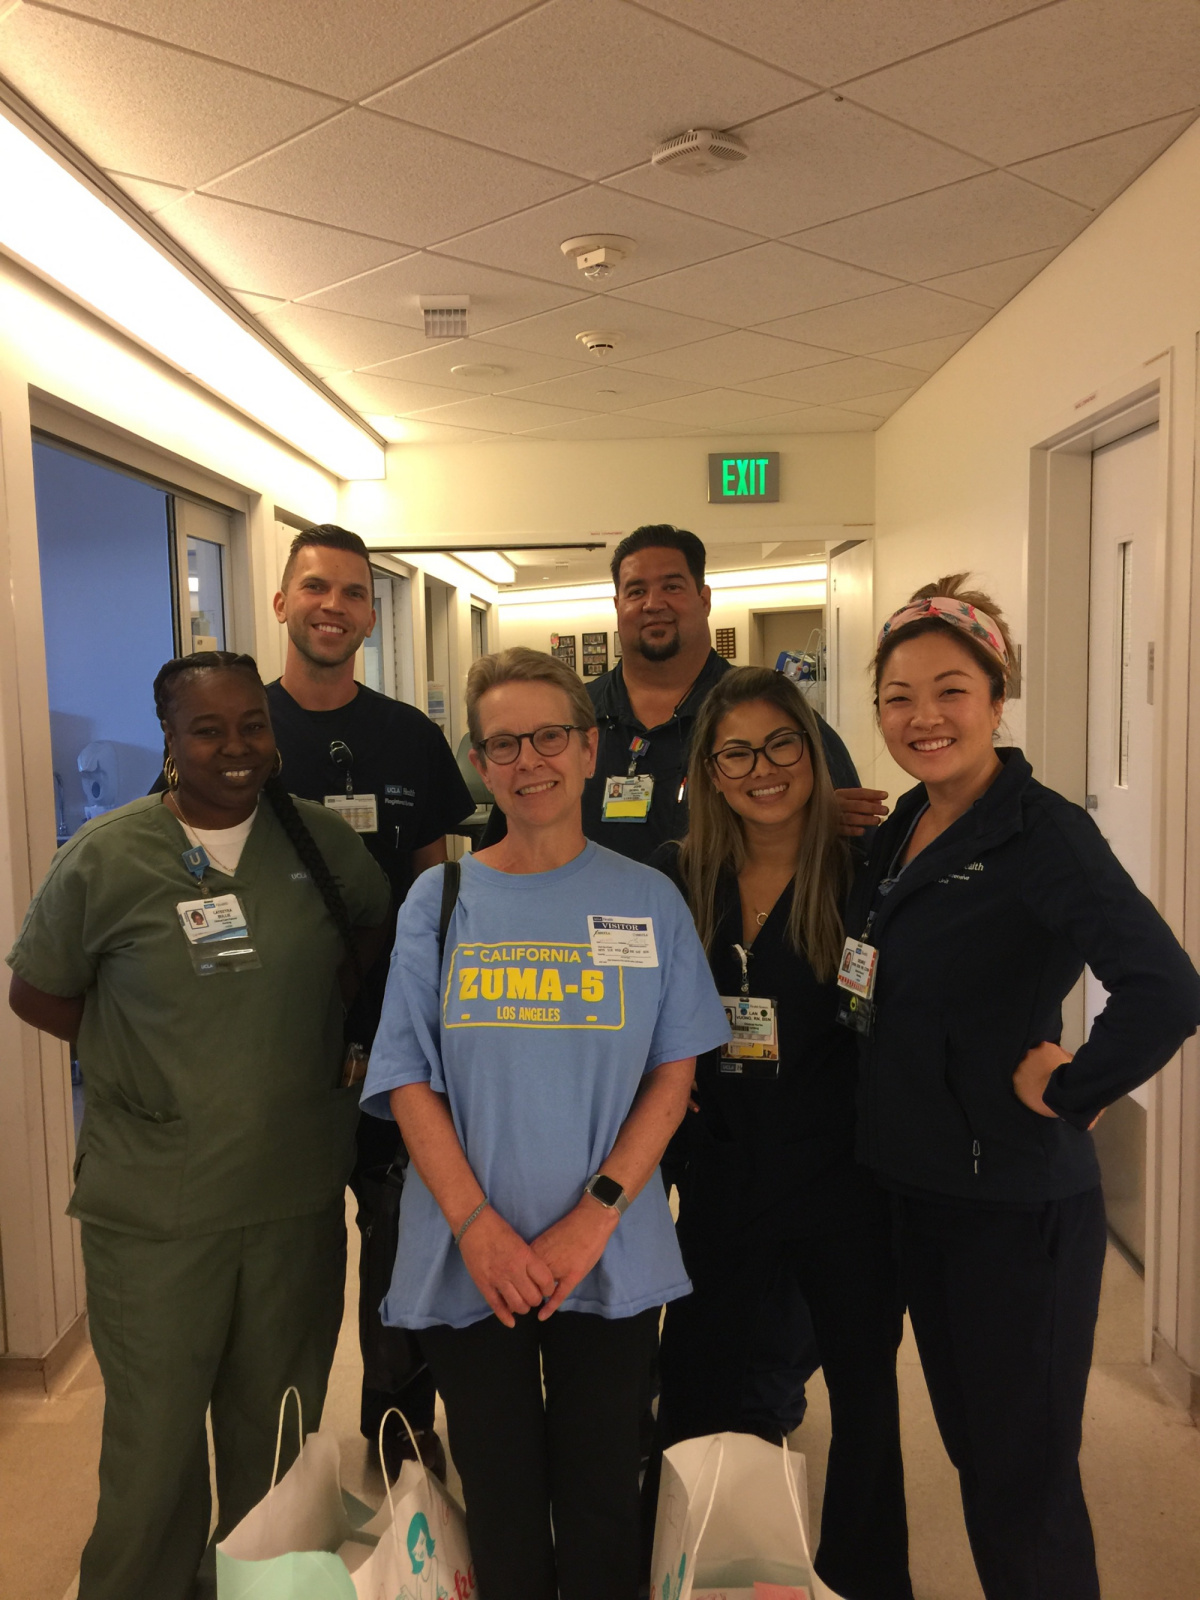 Staff on 6E, the transplant floor where I received my CAR-T cells